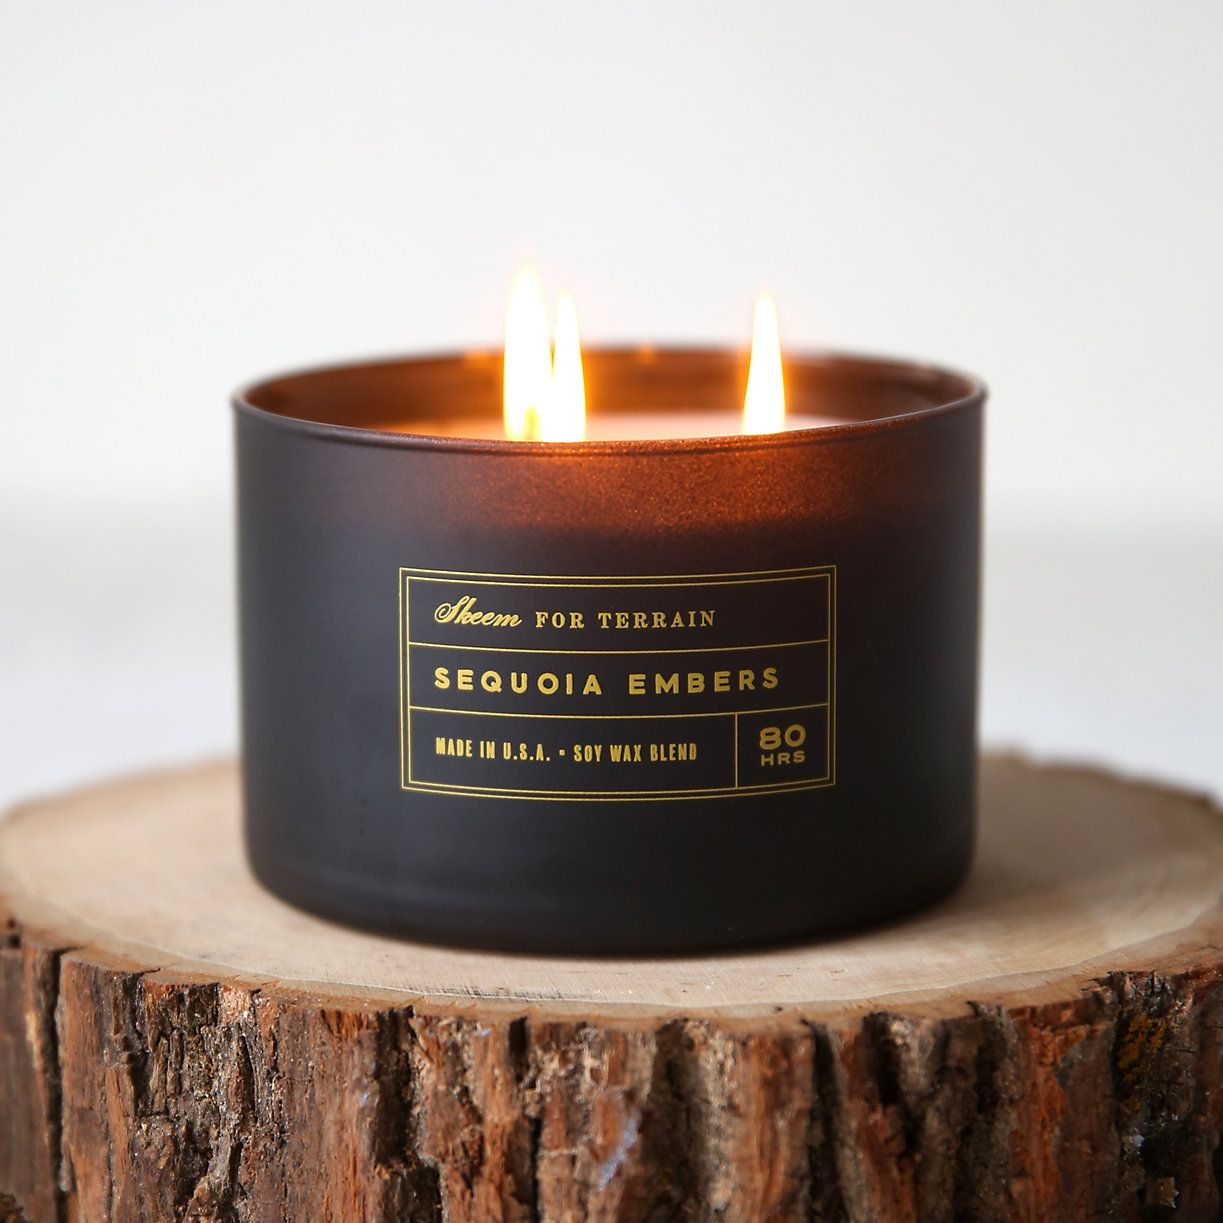 """Hand-poured exclusively for terrain and topped with a maple wood lid, this soy wax candle from Skeem pairs woodsy amber, patchouli, and sequoia with a smoky base and hints of fruit and spice.- A terrain exclusive- Maple wood lid, matte glass vessel, soy wax- Triple cotton wick - 80 hour burn time- 24 oz.- Hand-poured in the USA3.5""""H, 4.75"""" diameter"""